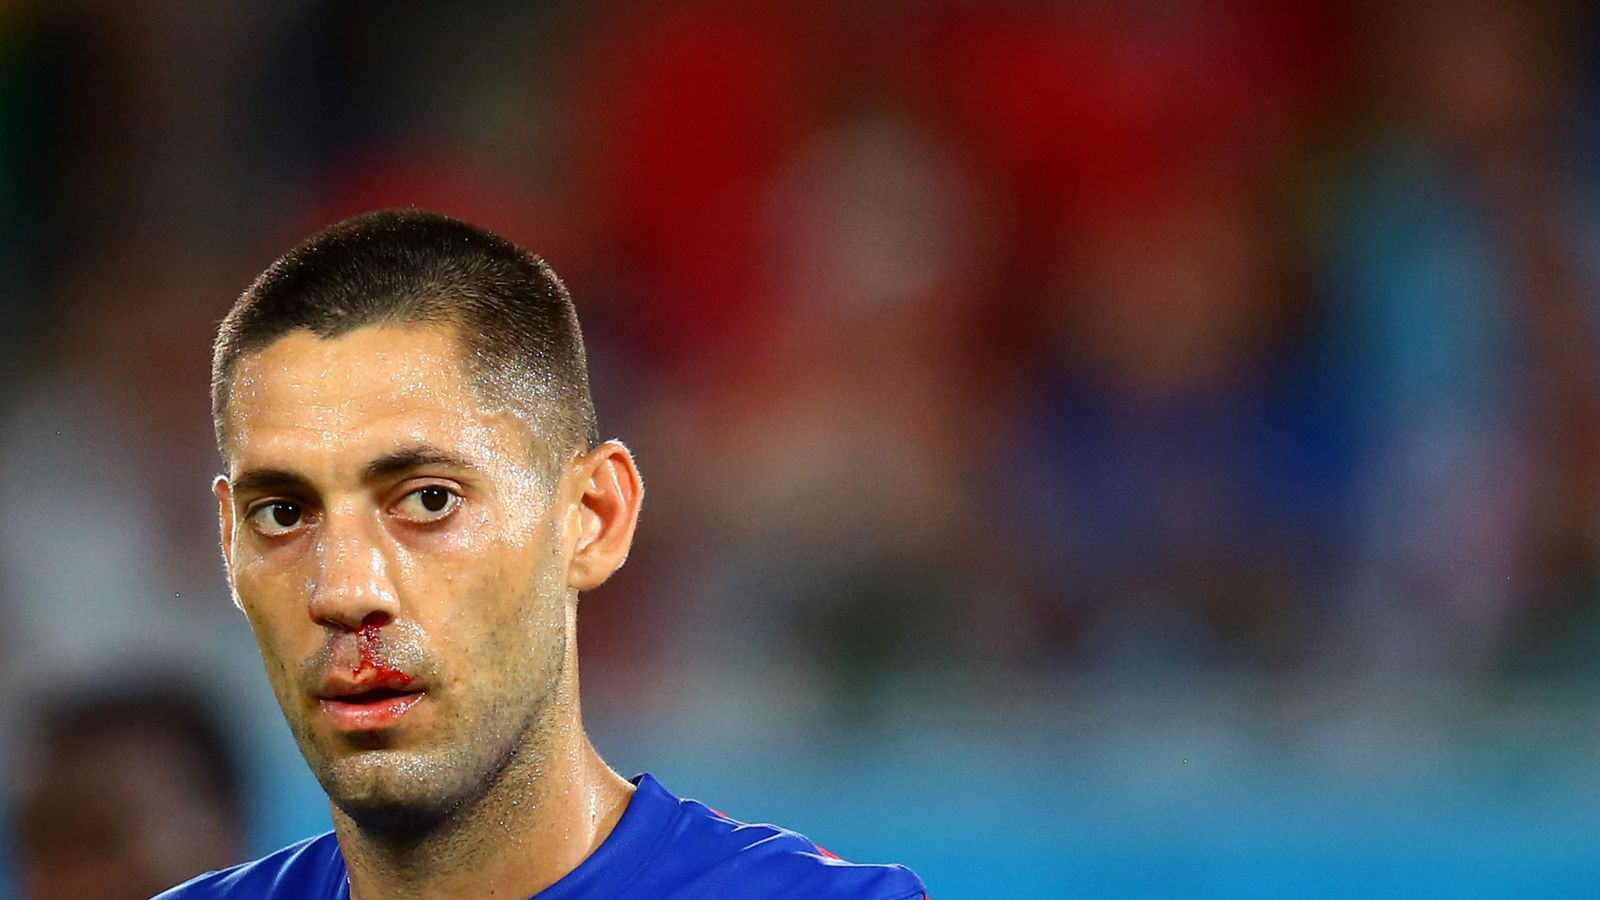 New England Revolution The New England Revolution selected Clint Dempsey eighth overall in the 2004 MLS SuperDraft In his rookie season he started 23 of 24 matches